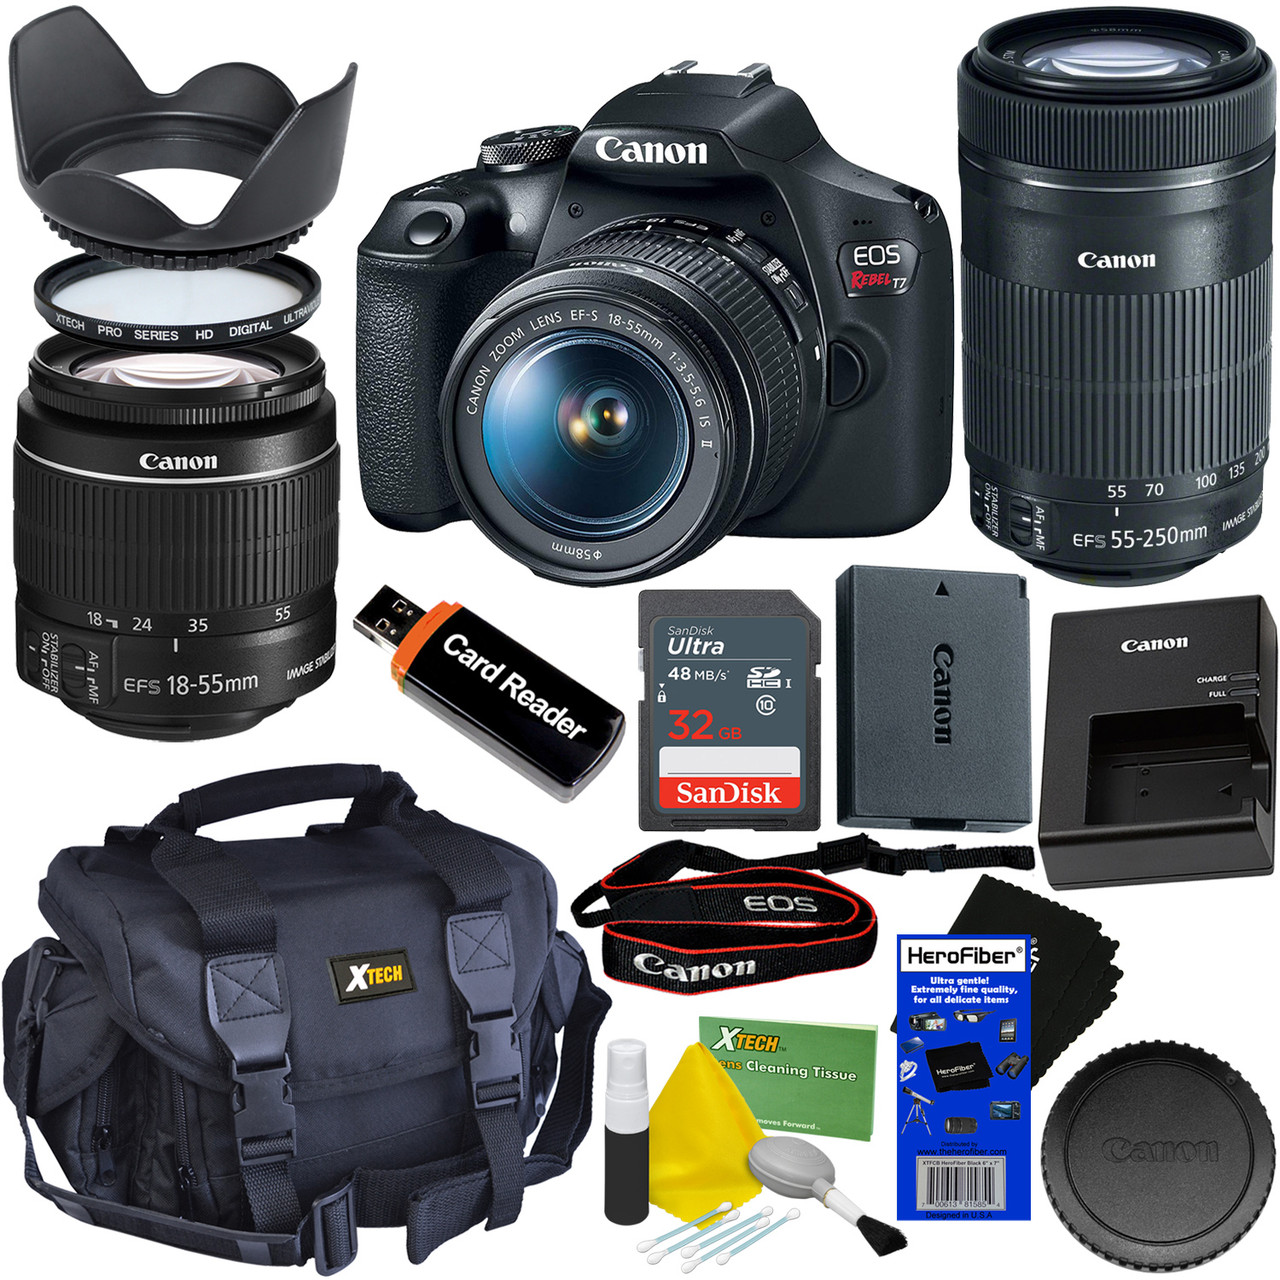 Canon Dslr Camera Eos Rebel T7 Bundle With 18 55mm Is Ii Lens Ef S 55 250mm F 4 5 6 Is Stm Zoom Lens Canon Battery Charger 32gb Accessory